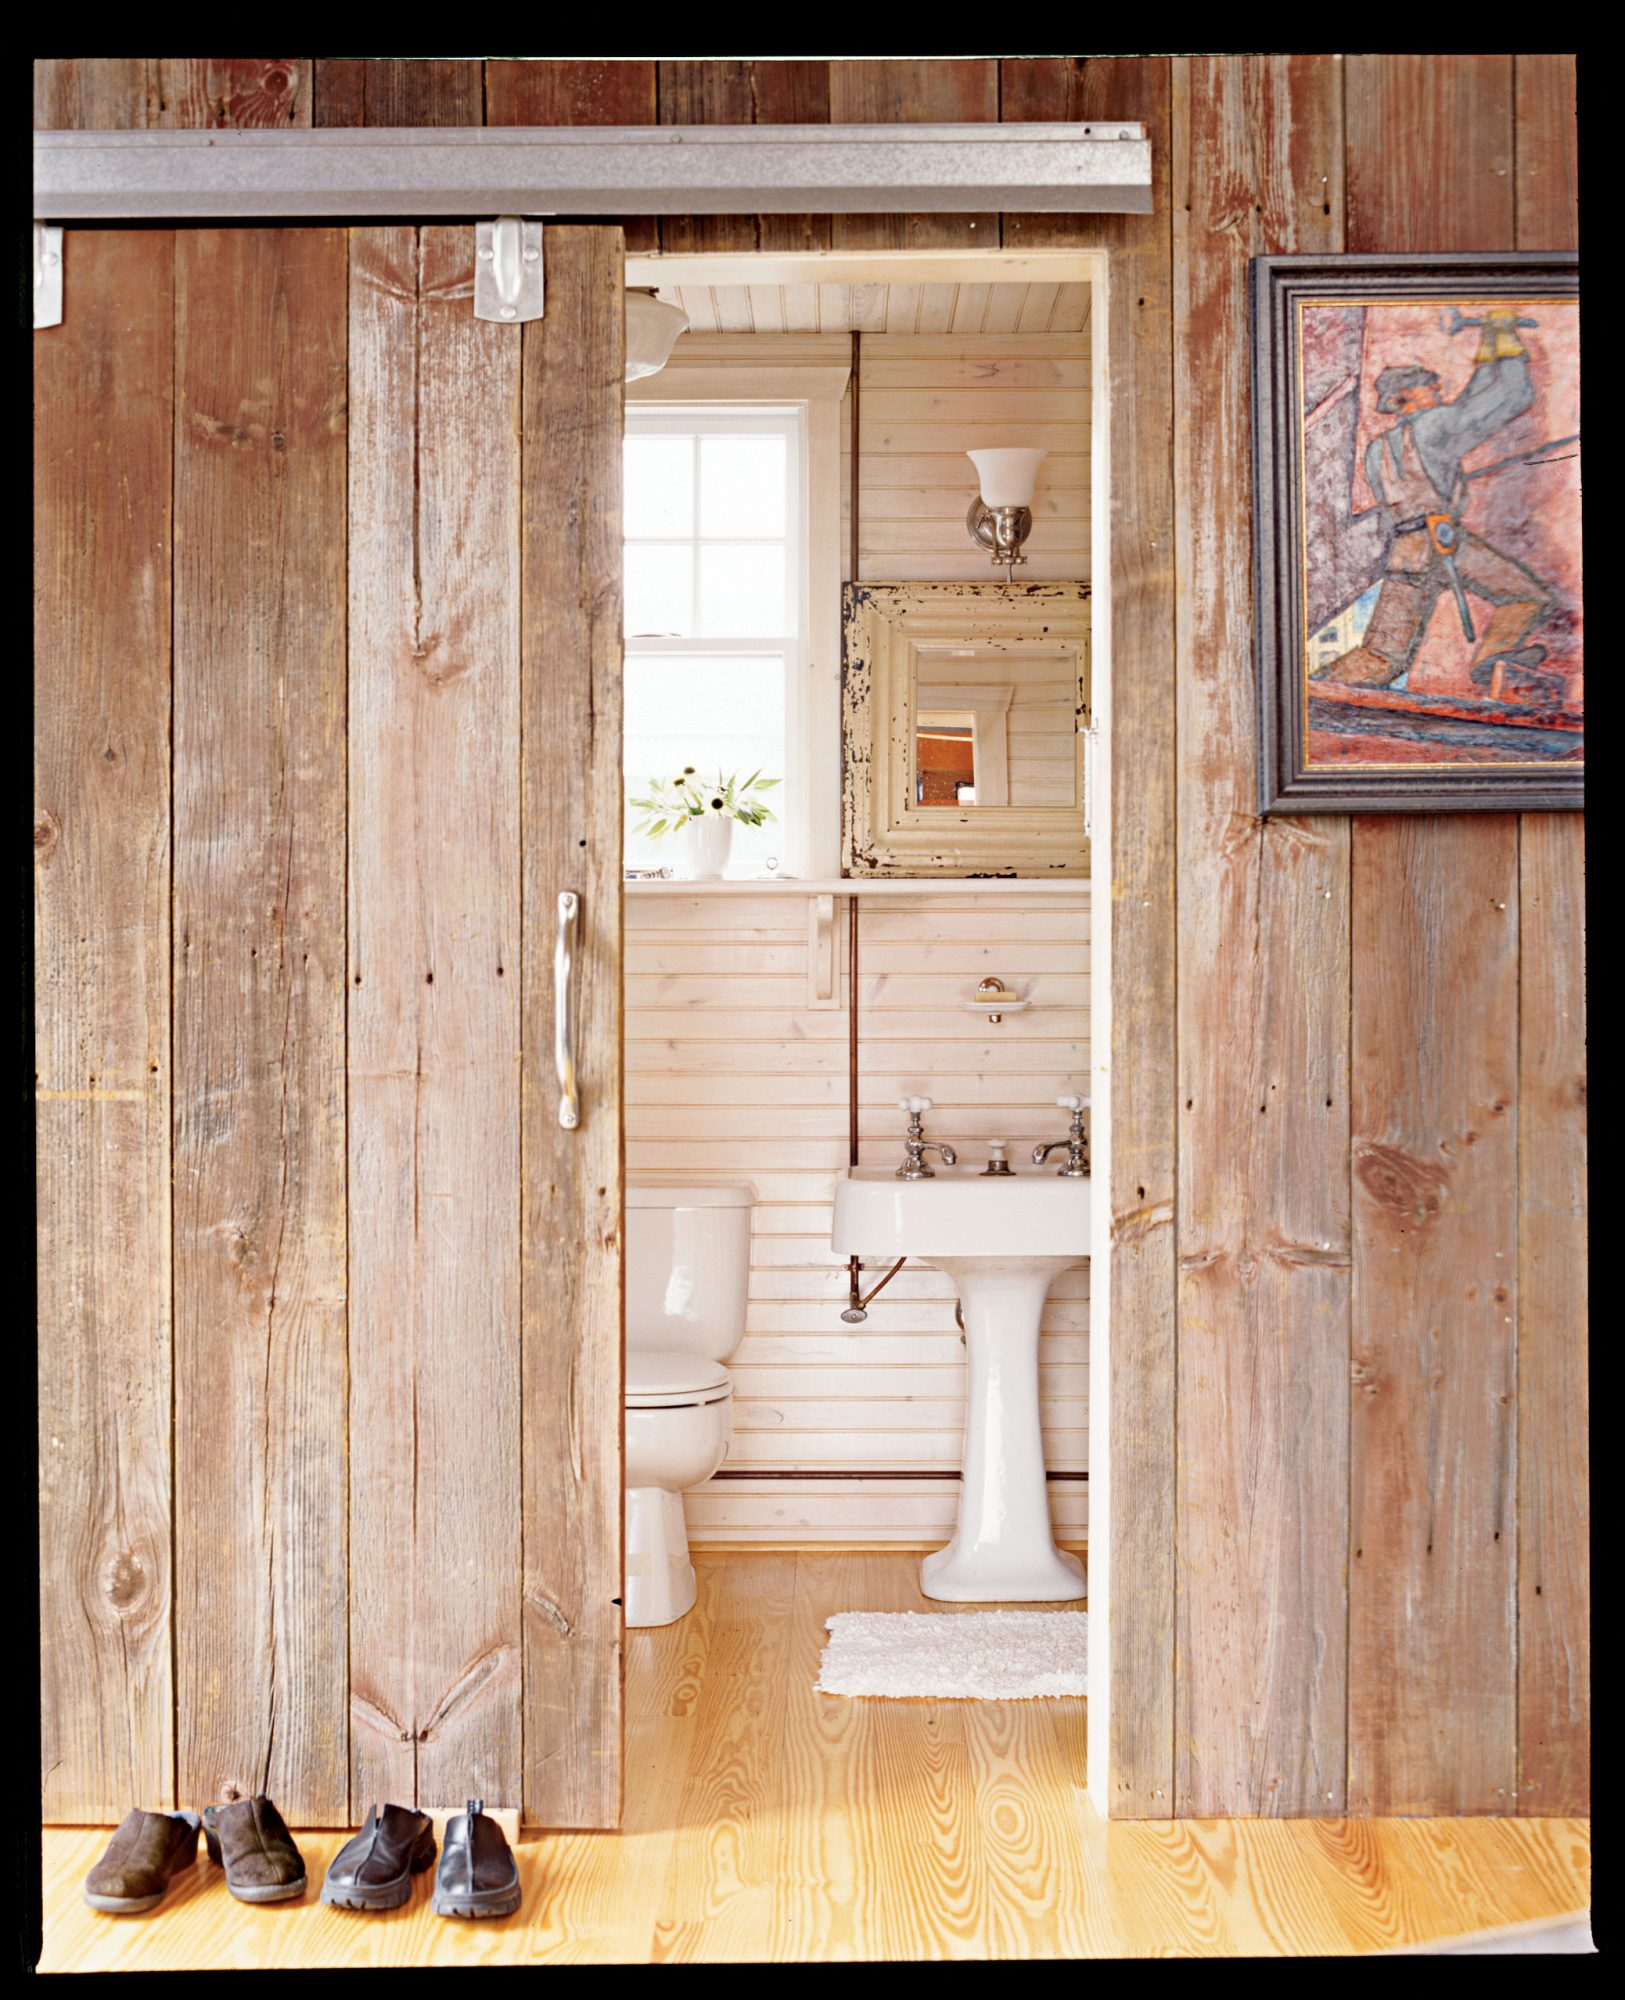 a sliding door opens up to a small bathroom lined in pale wood with a bathroom mirror framed with aged, creamy molding to surround it